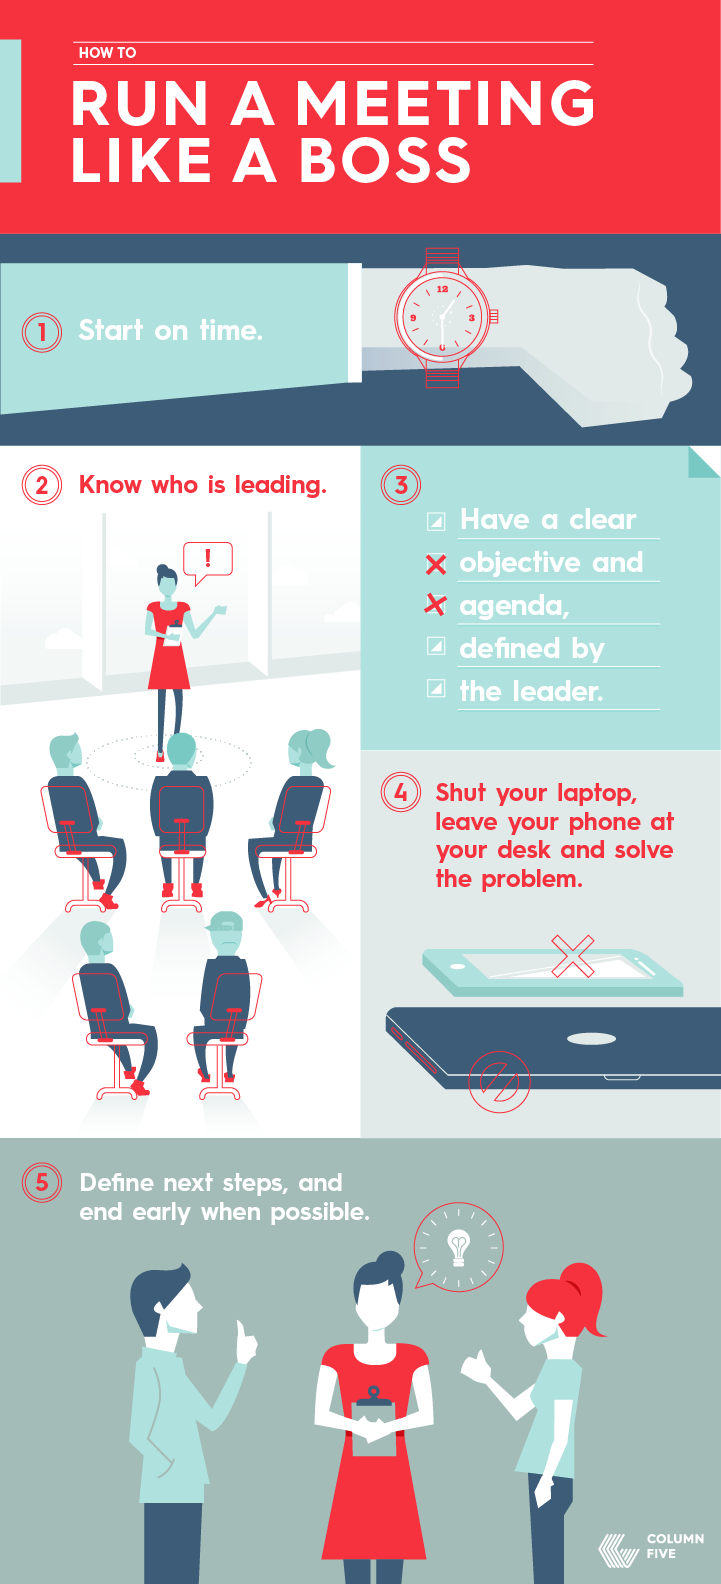 How to run a meeting like a boss infographic